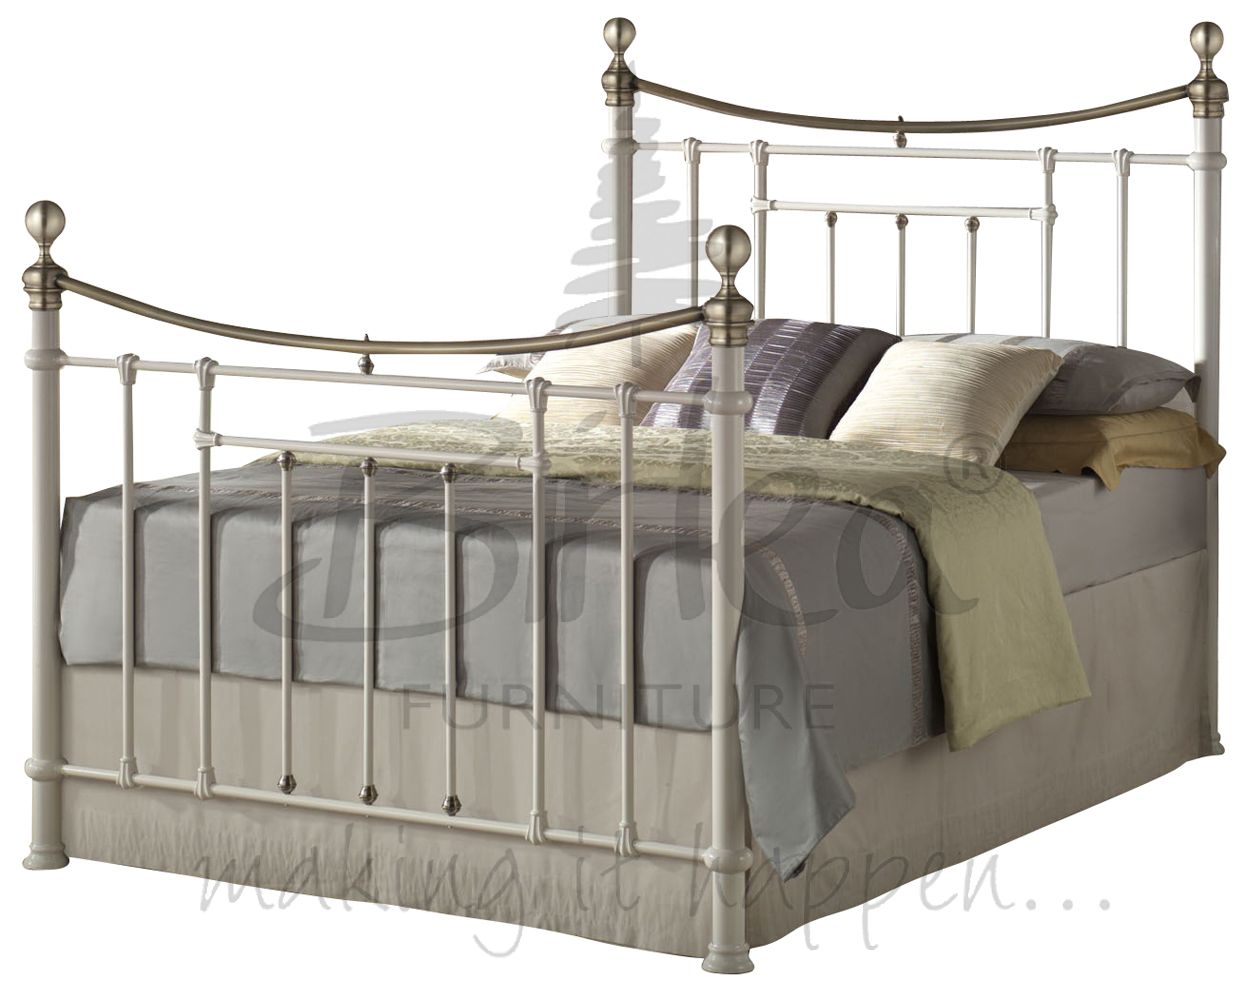 Victorian Style Metal Bed Frames : Classic vintage victorian style metal bed ft and